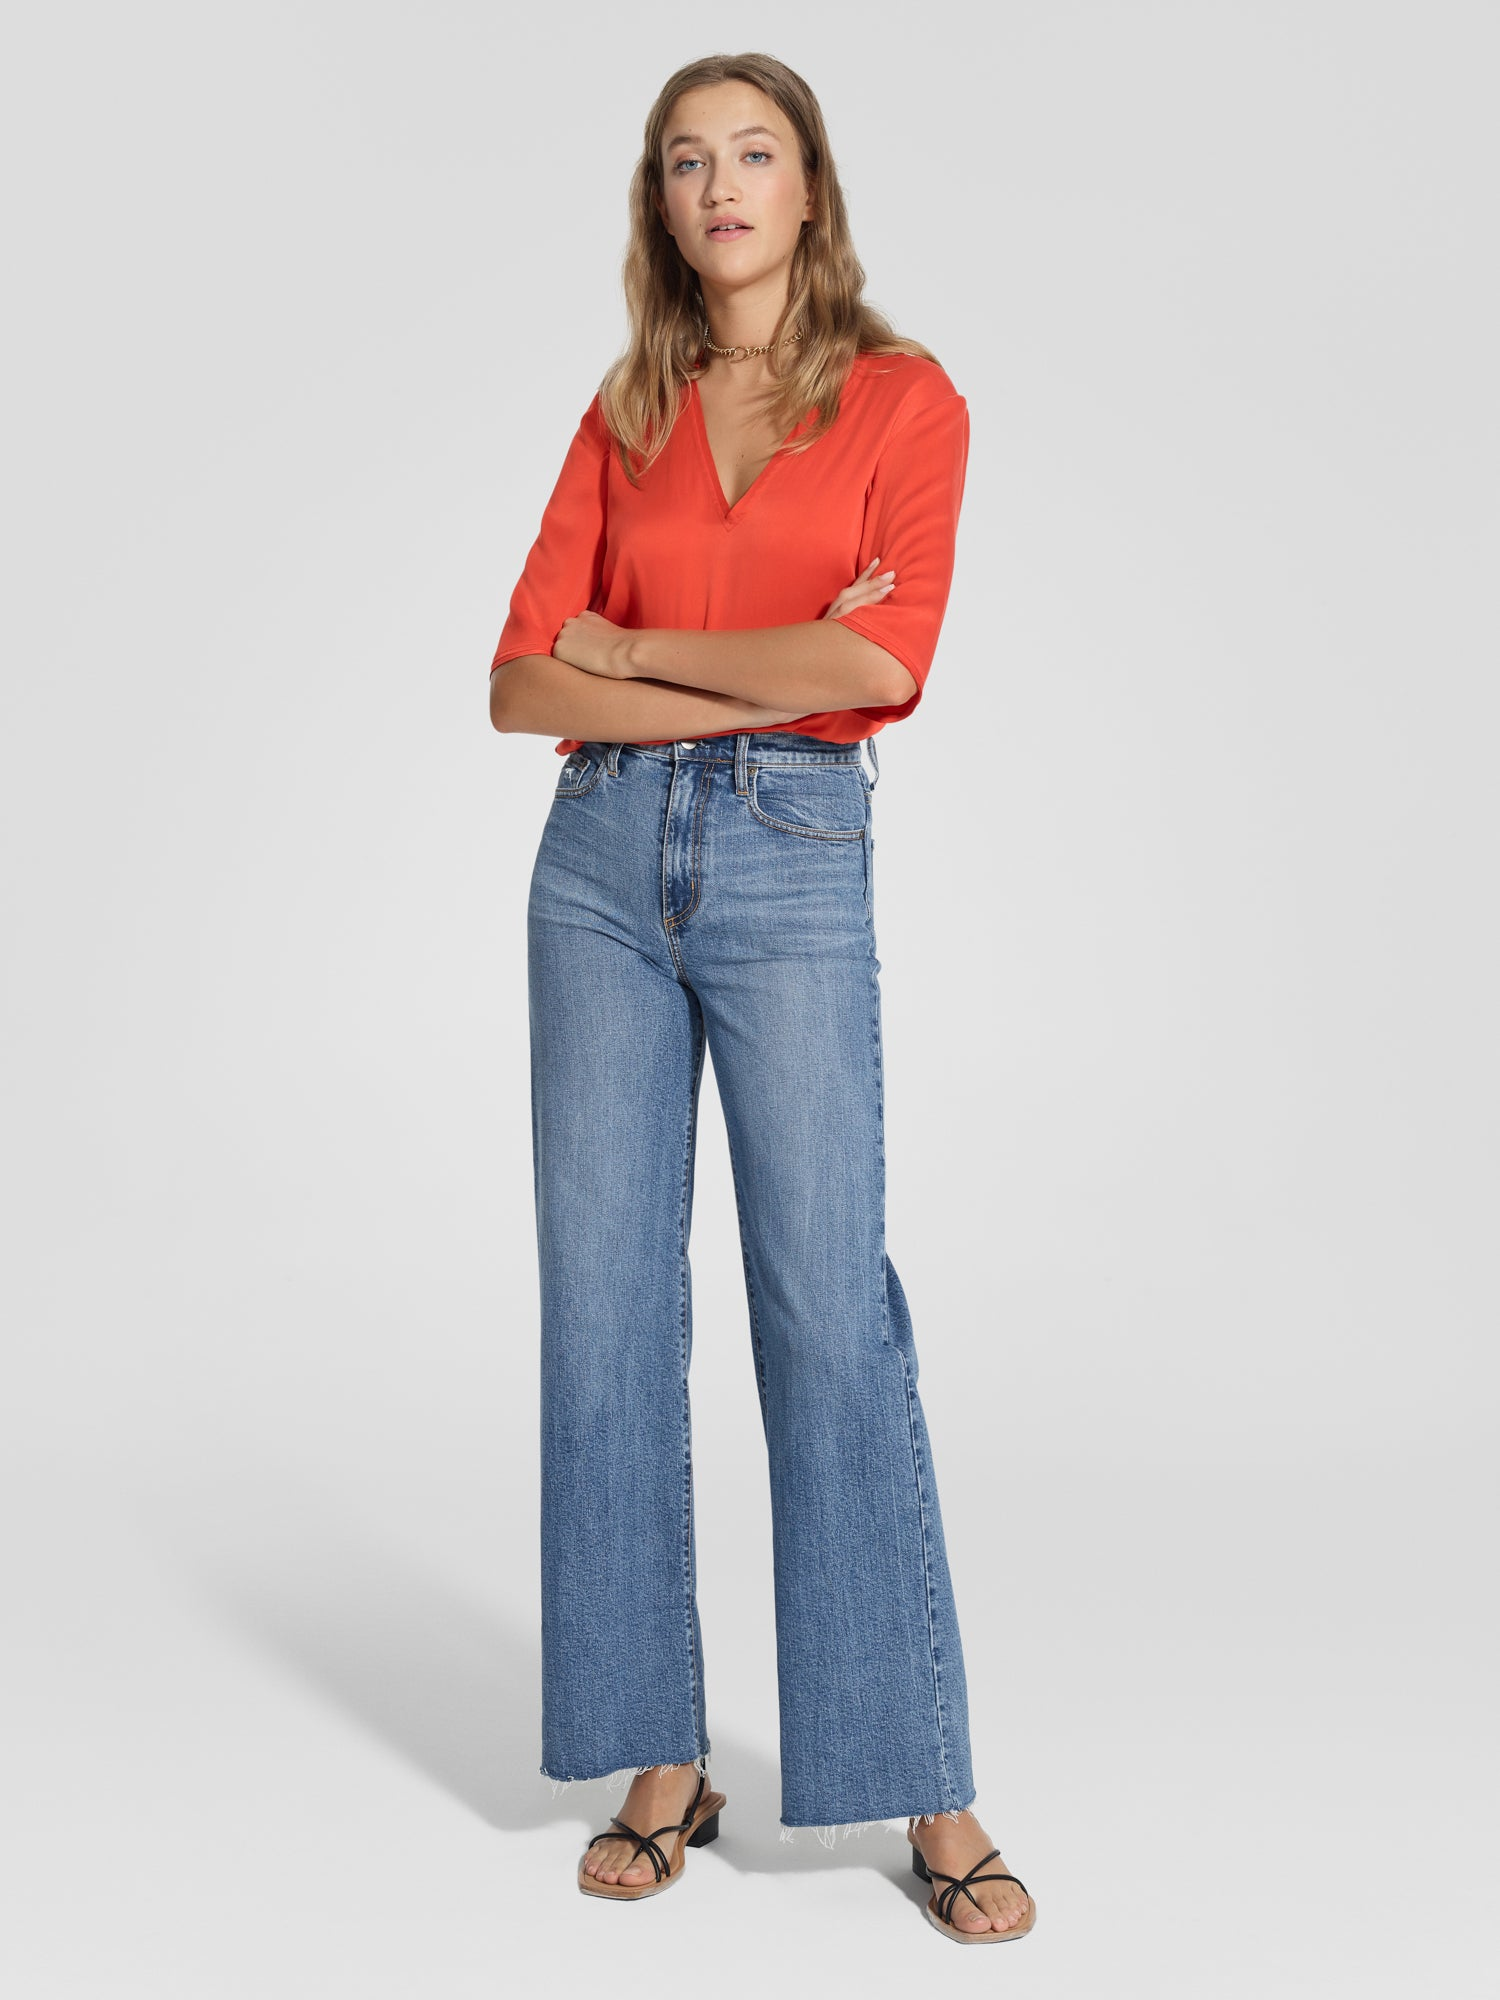 Milla Jean Long Influencer